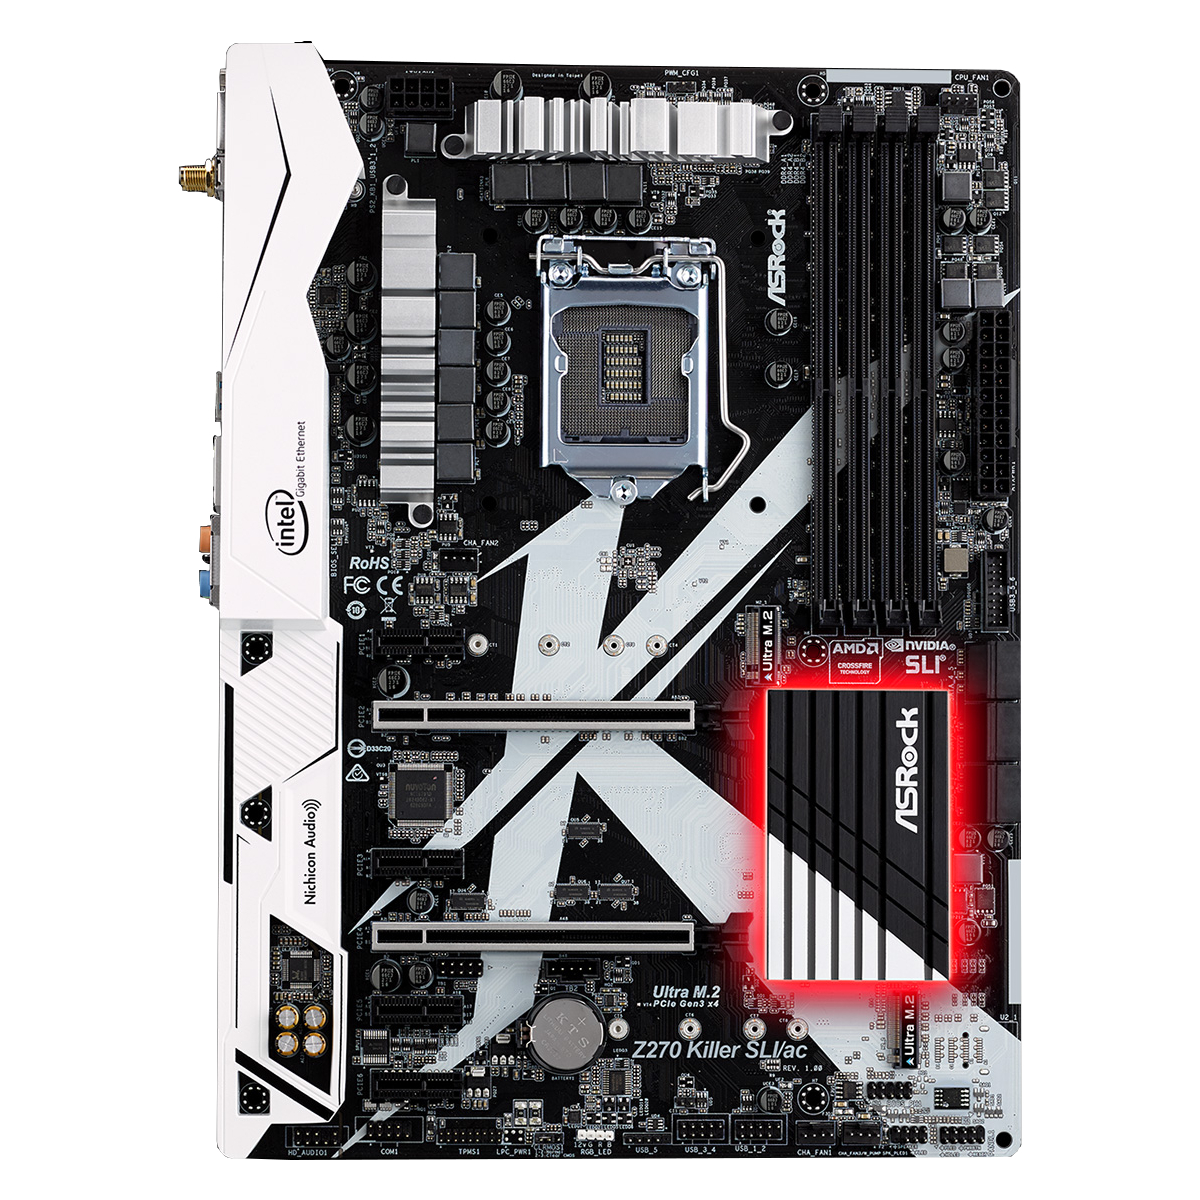 Placa de baza ASRock Z270 Killer SLI socket 1151